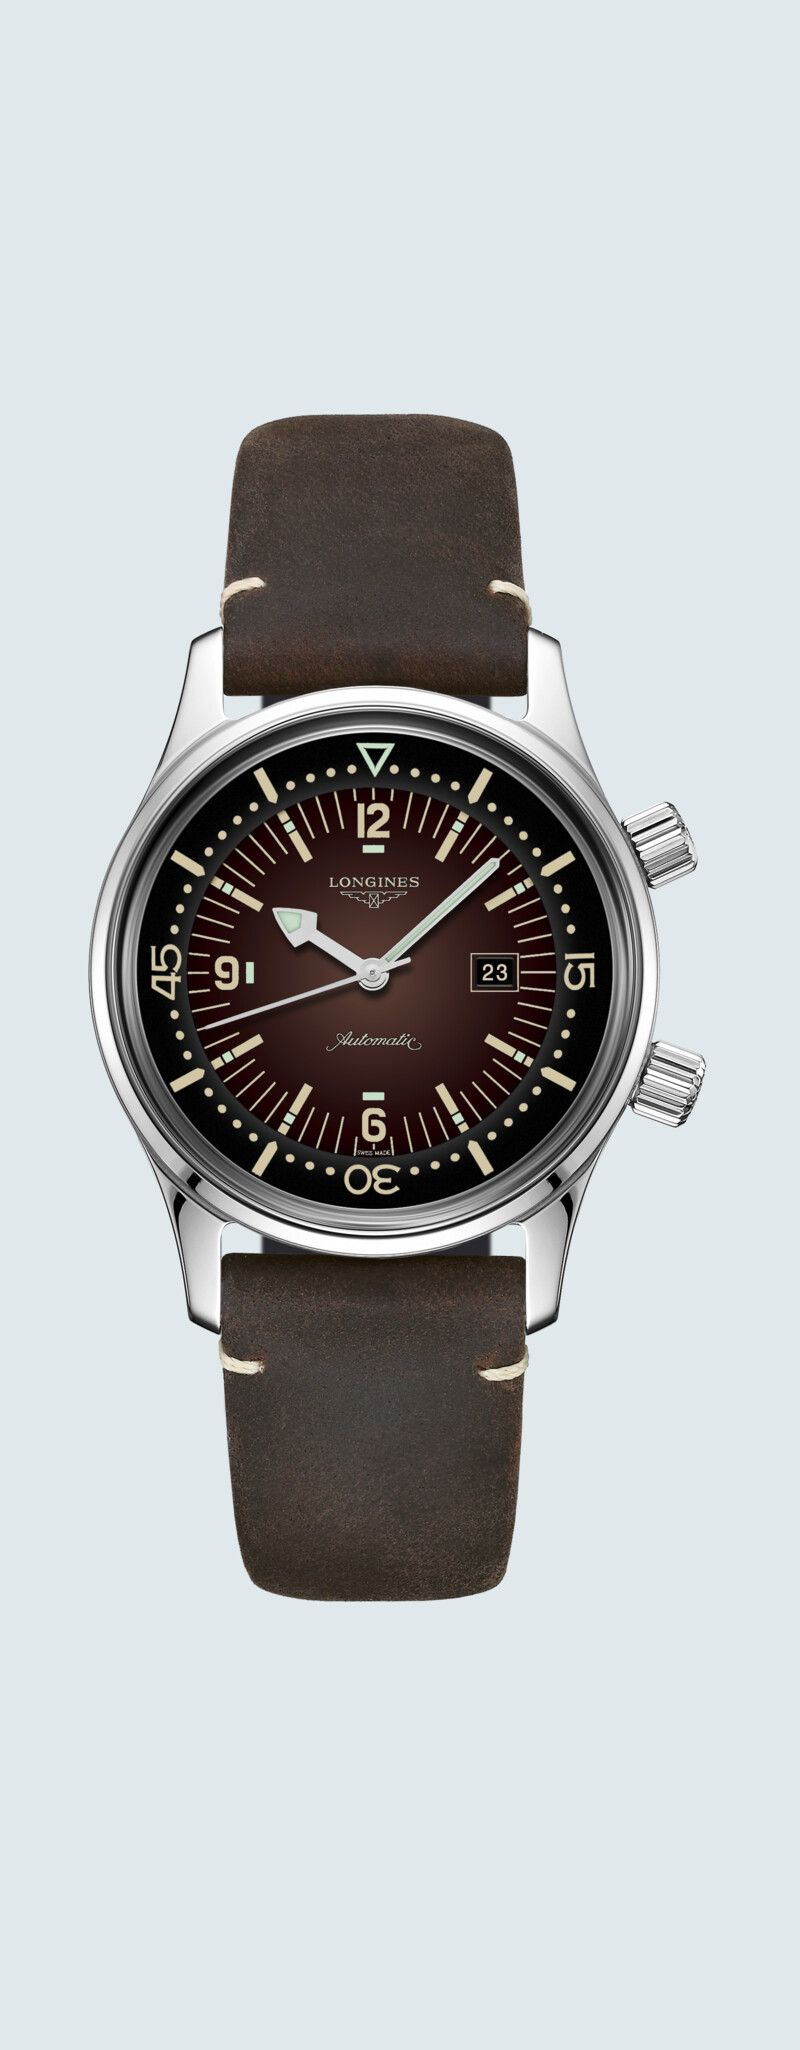 36.00 mm Stainless steel case with Brown dial and Leather strap Brown strap - case zoom view